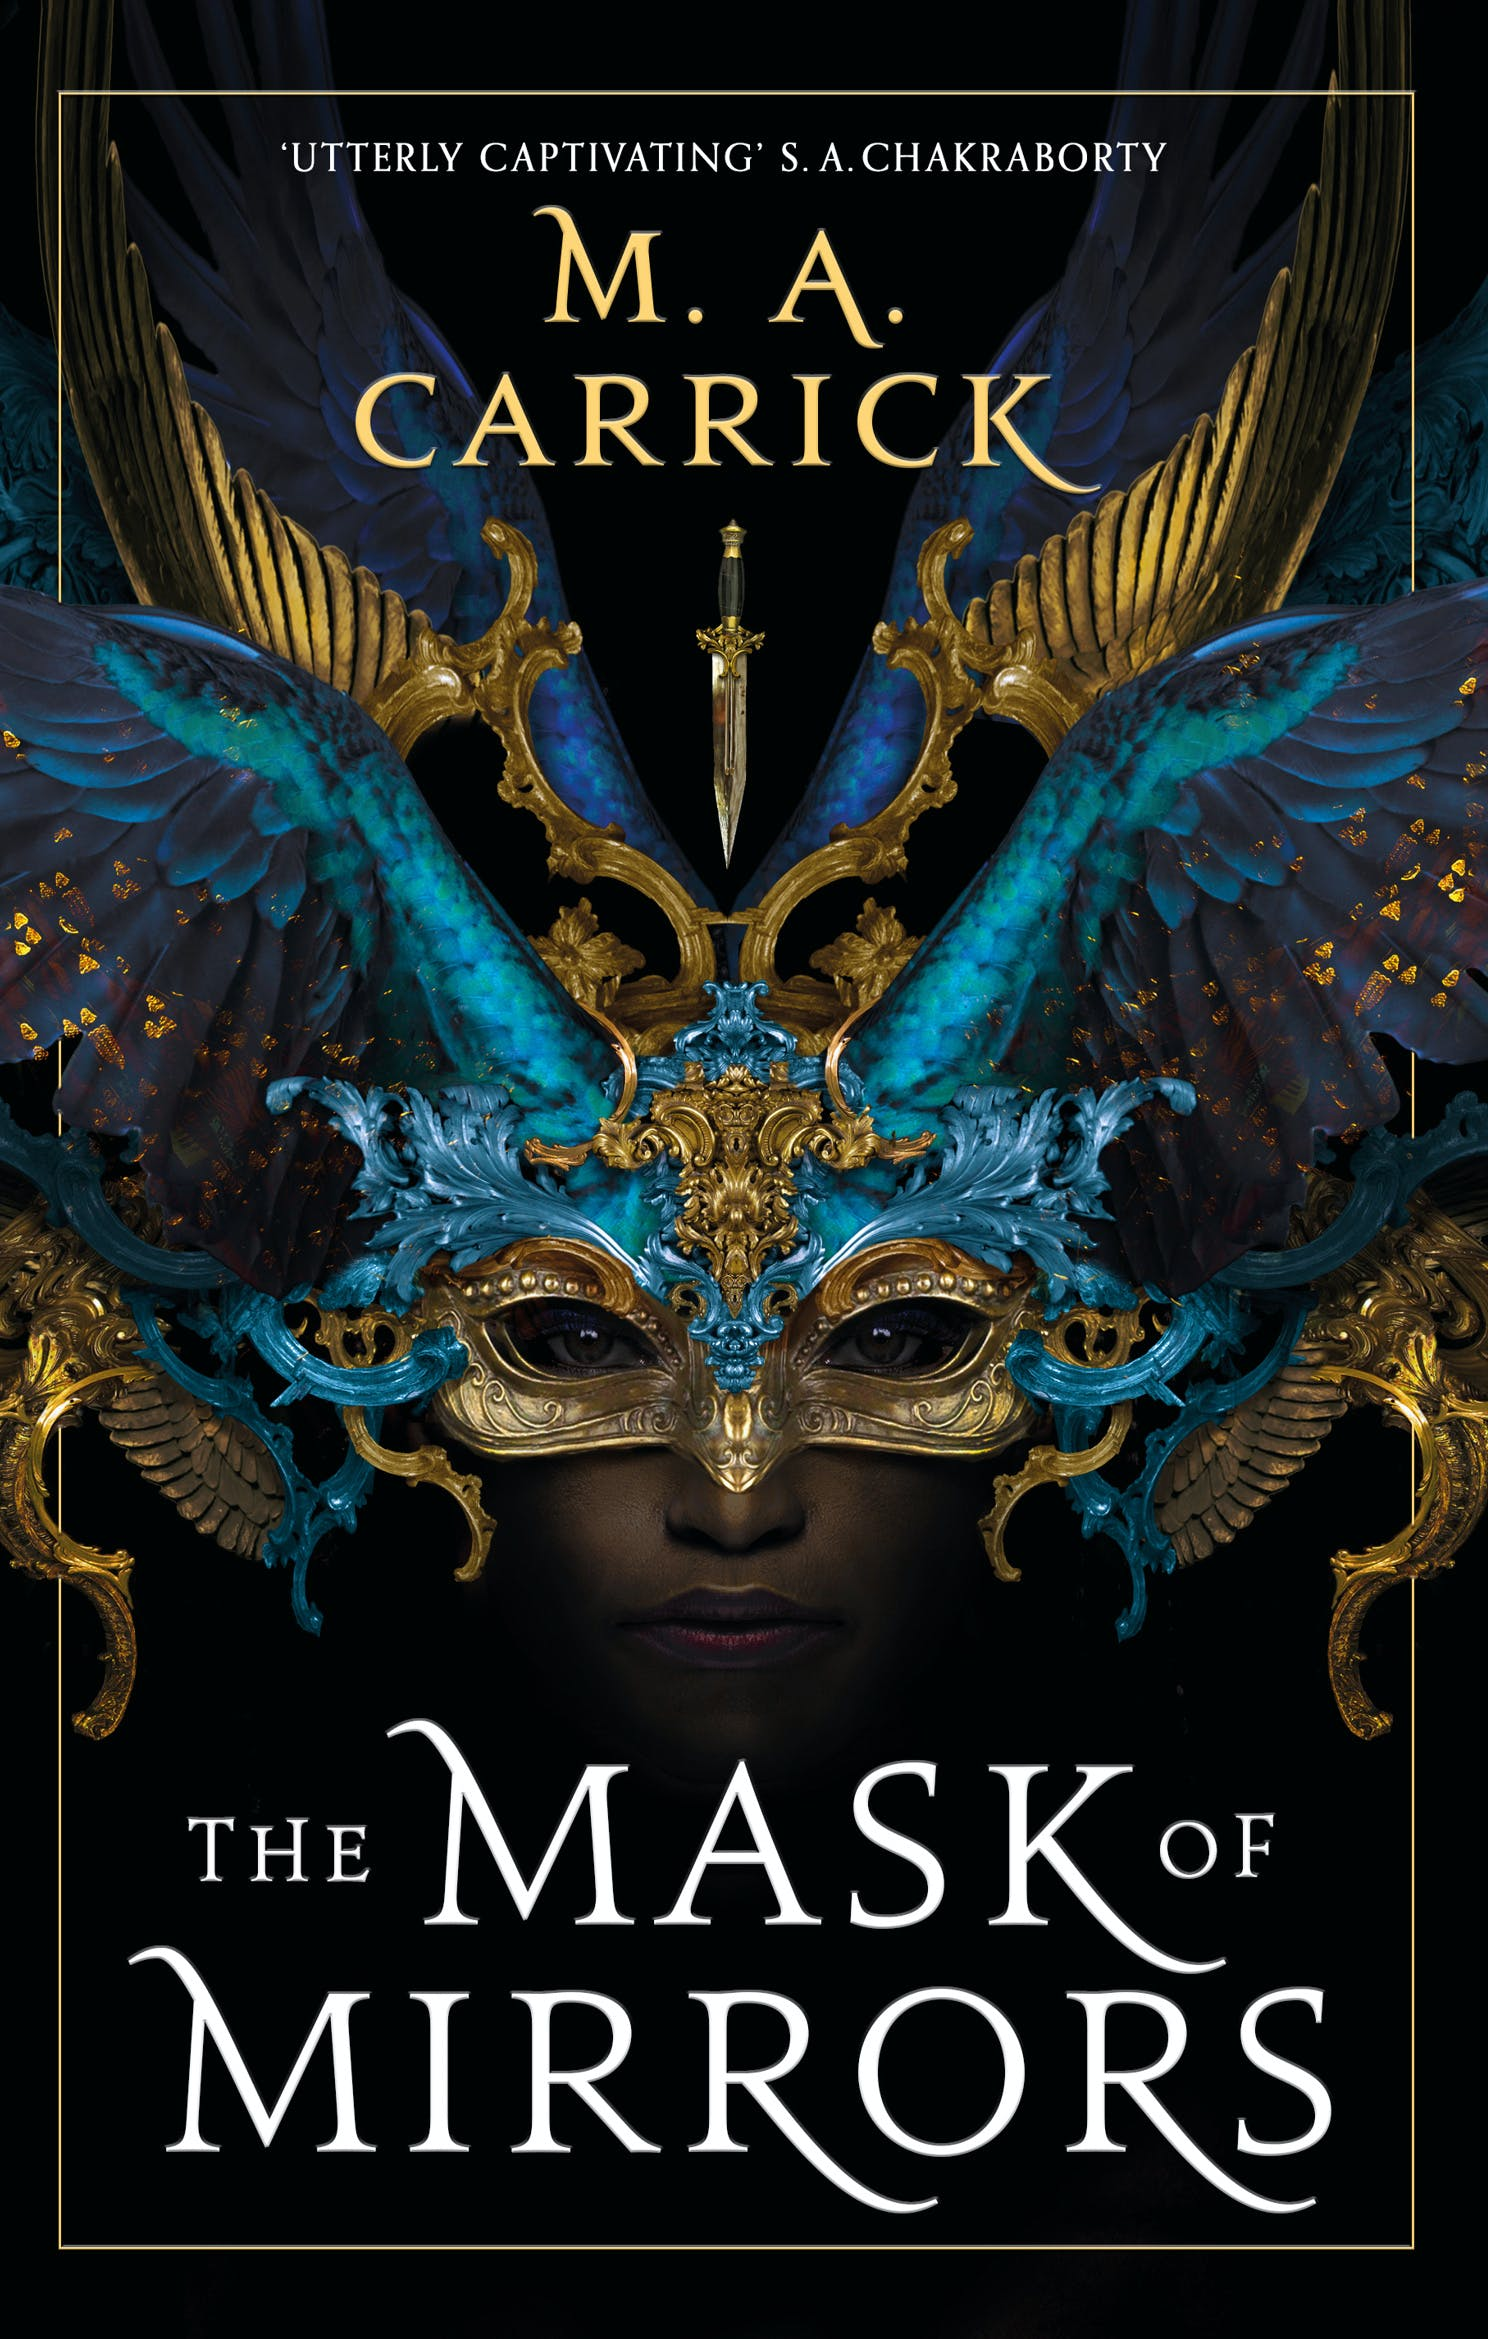 The Mask of Mirrors by M. A. Carrick - Books - Hachette Australia